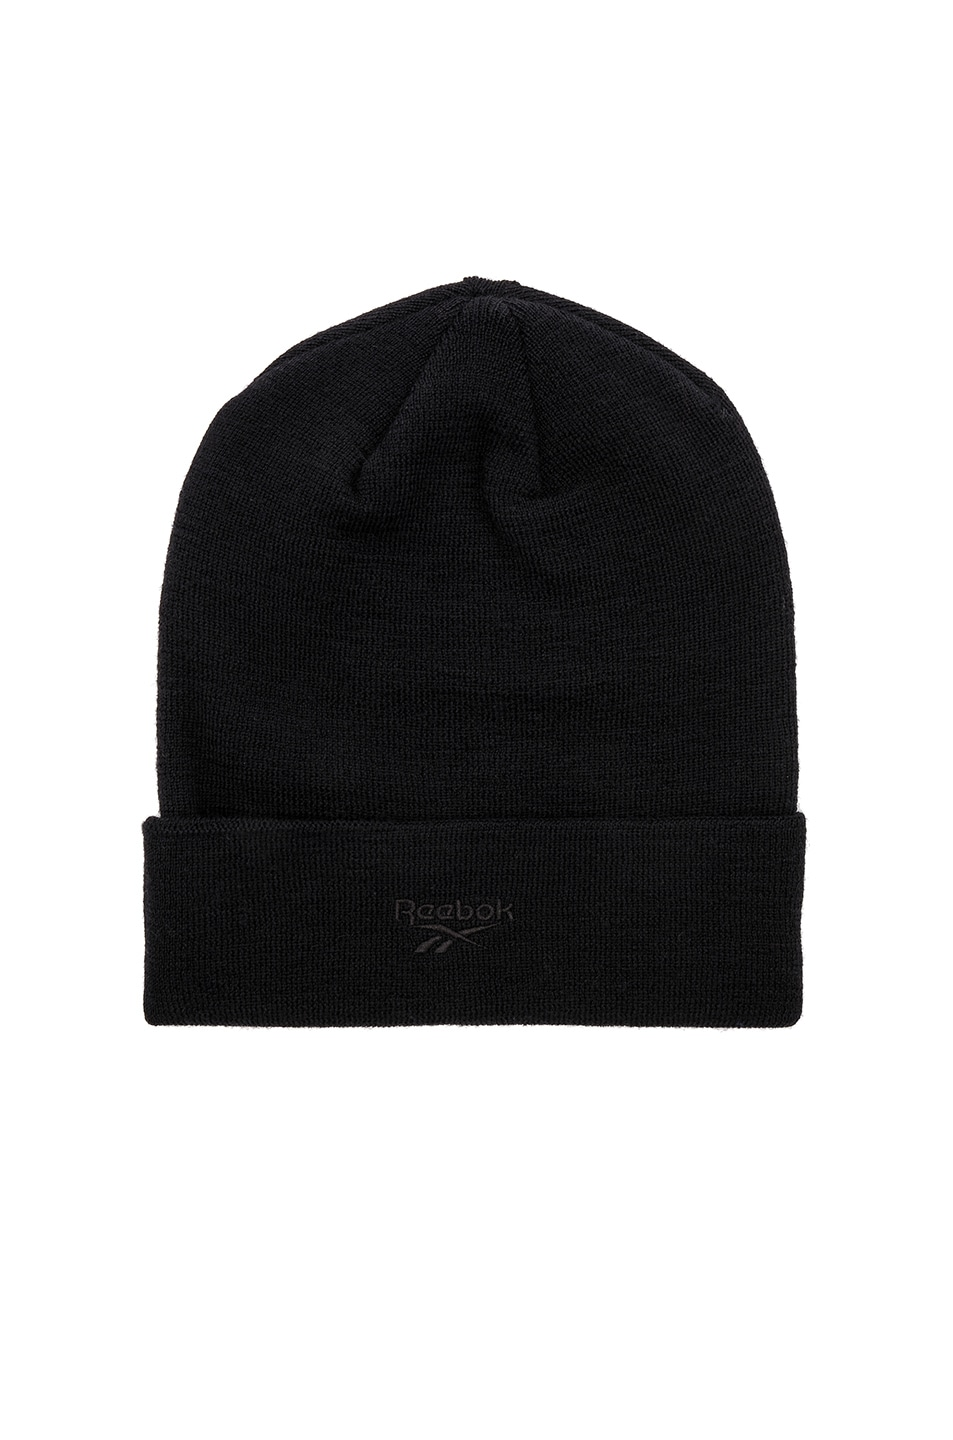 838cb8624f1 Image 2 of VETEMENTS Reebok Beanie in Black